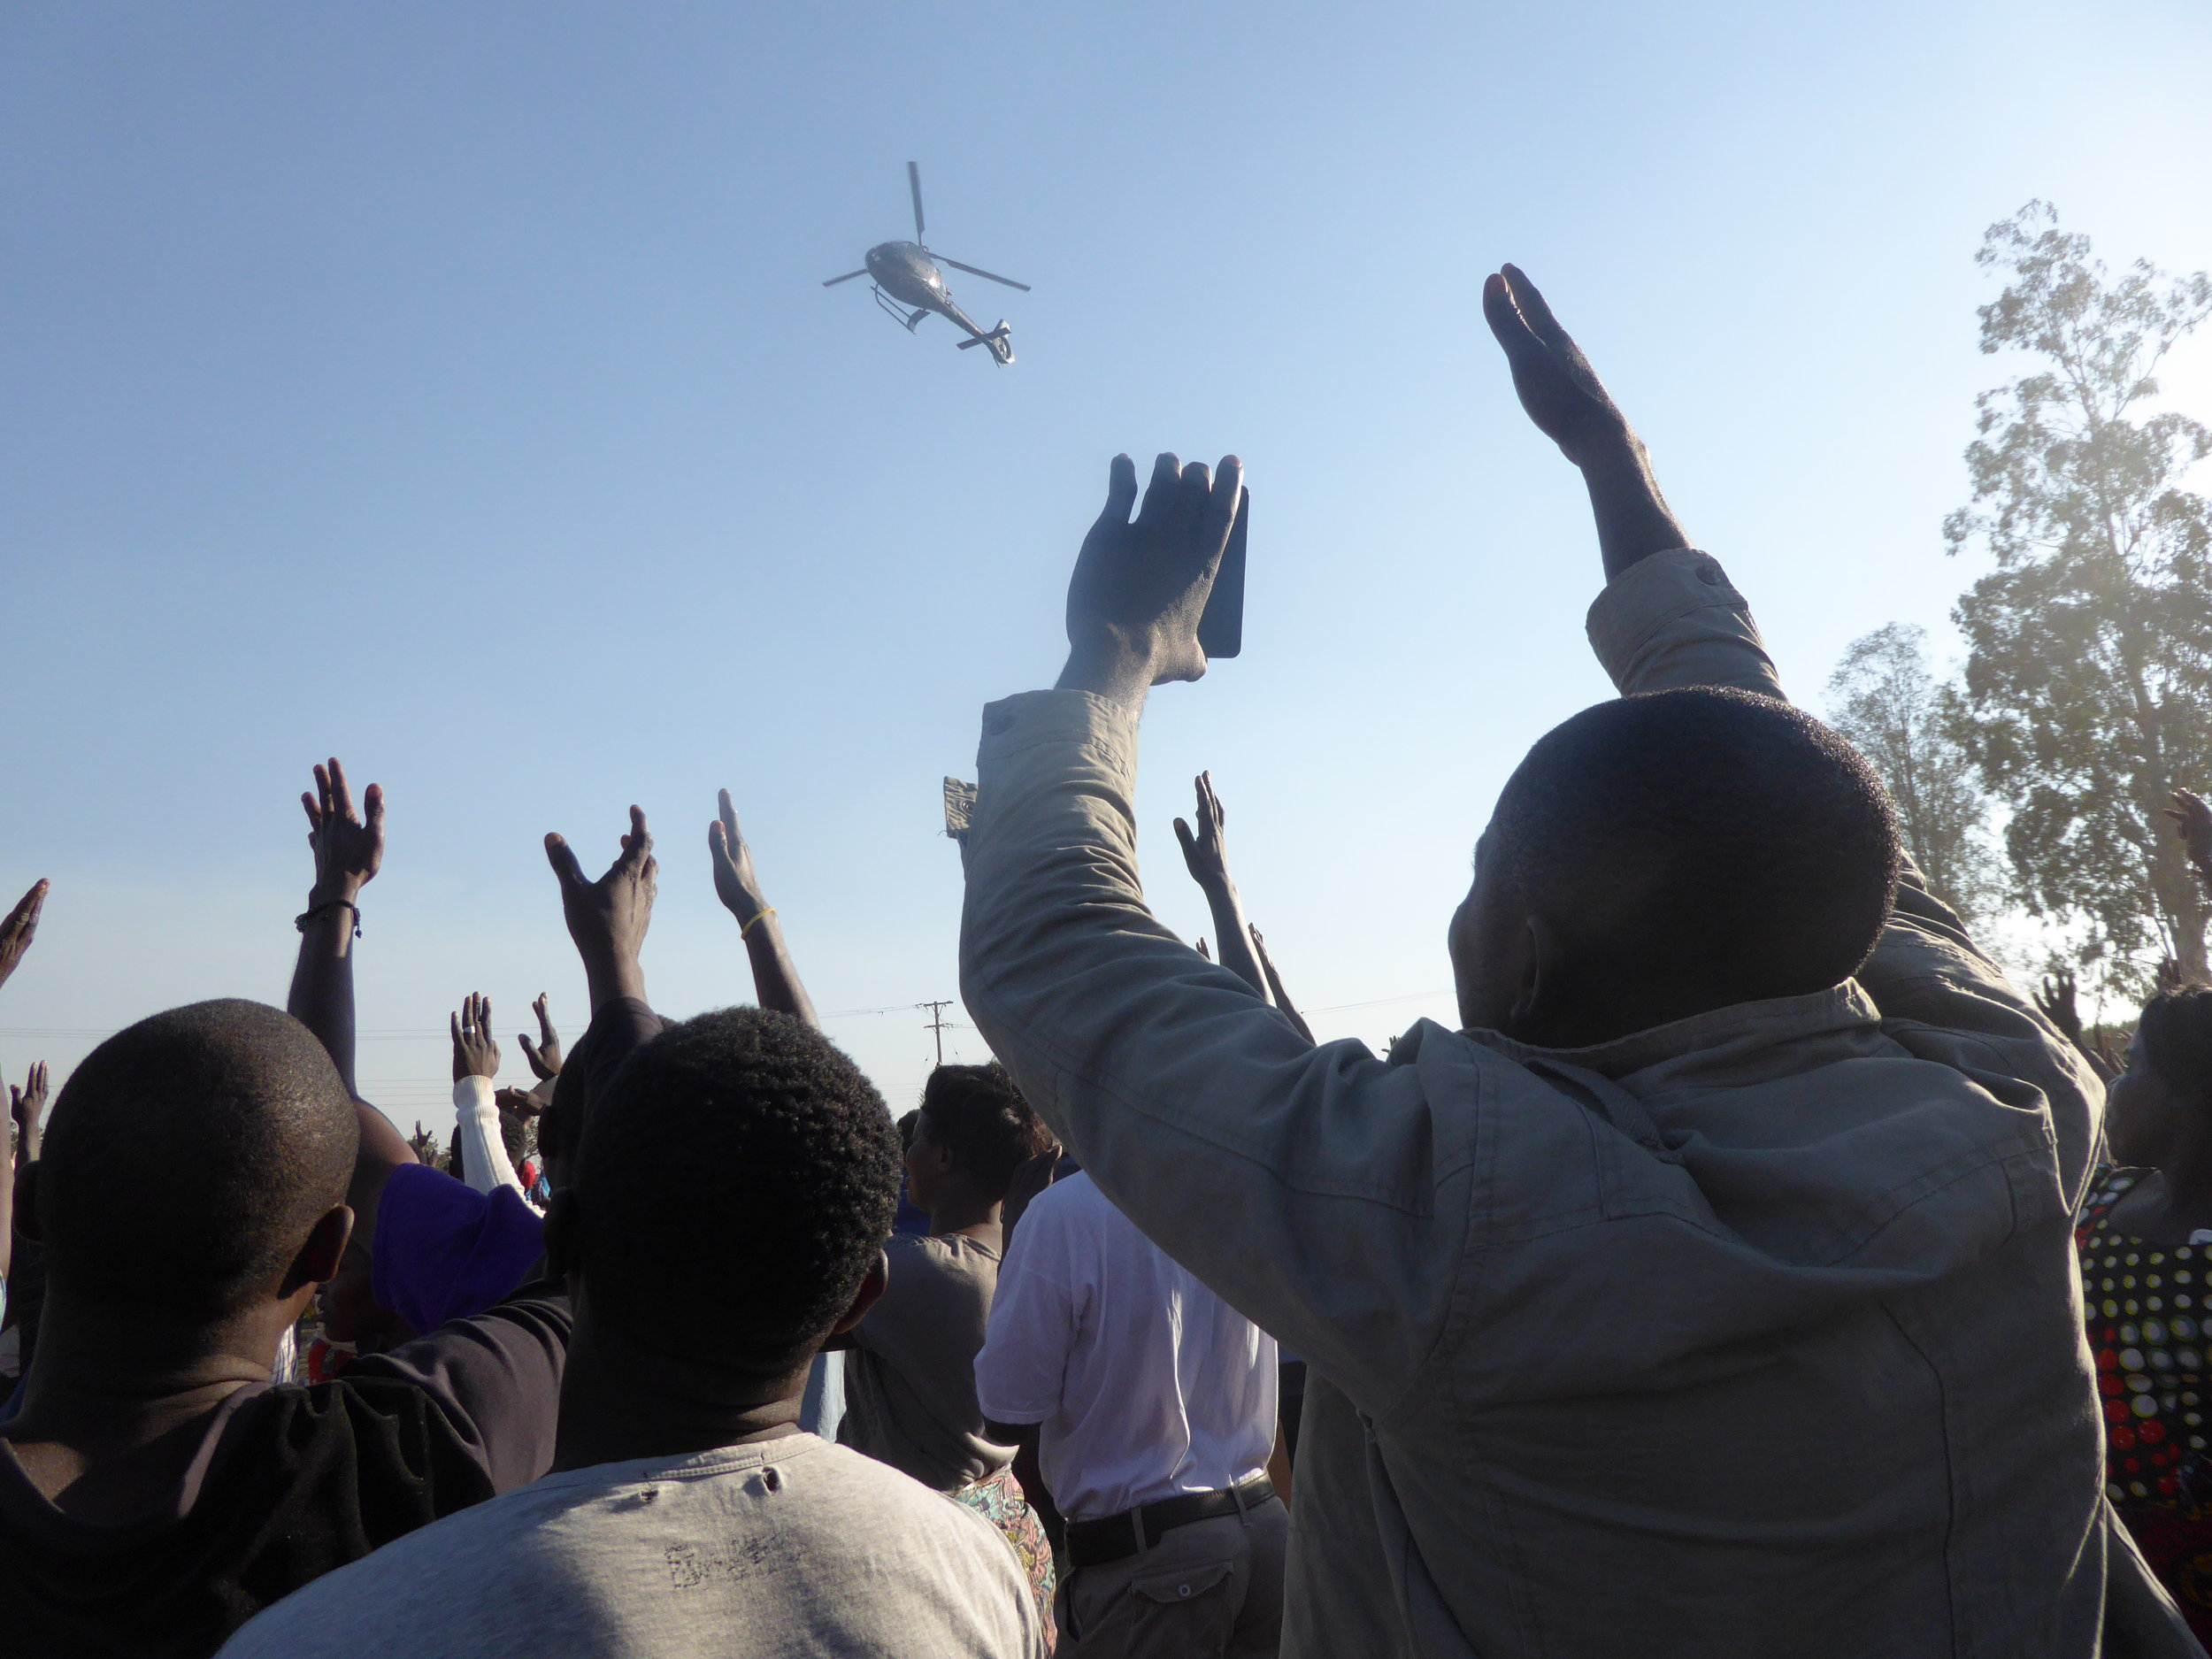 Zambian mobile phone users taking photos of helicopter landing of UPND's presidential candidate, Hakainde Hichilema at a rally in Mandevu, Lusaka Photo: Wendy Willems